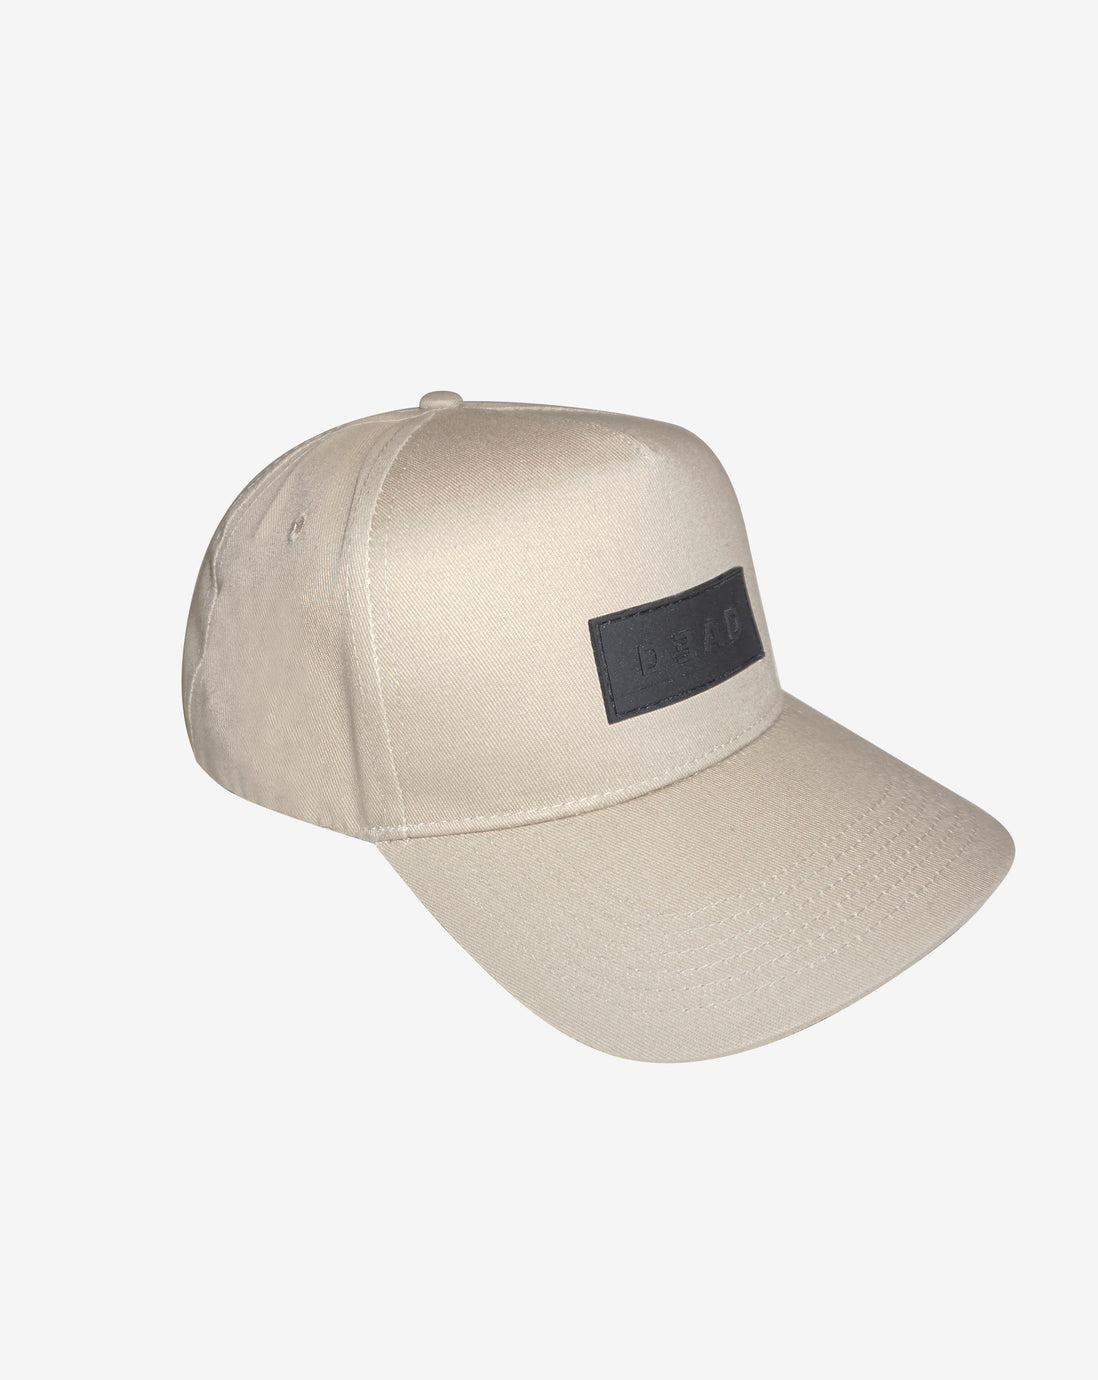 BADGE SNAPBACK - TAN